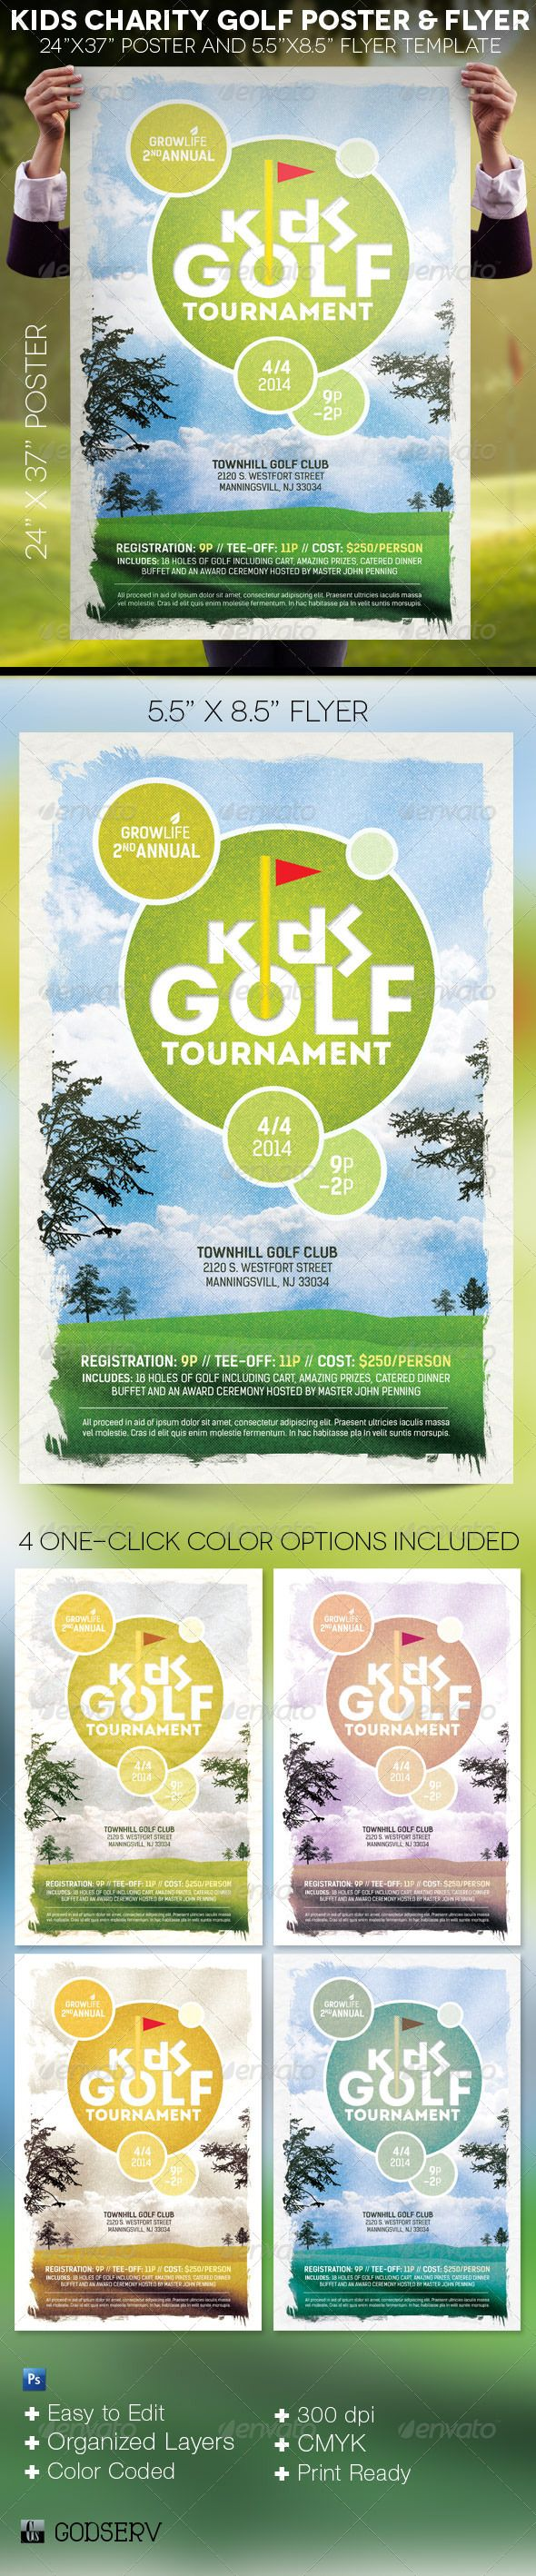 The Kids Charity Golf Poster and Flyer Template is for any sport club, charity organization and professional golf event. It uses retro colors and textures that will captivate your target audience. $6.00